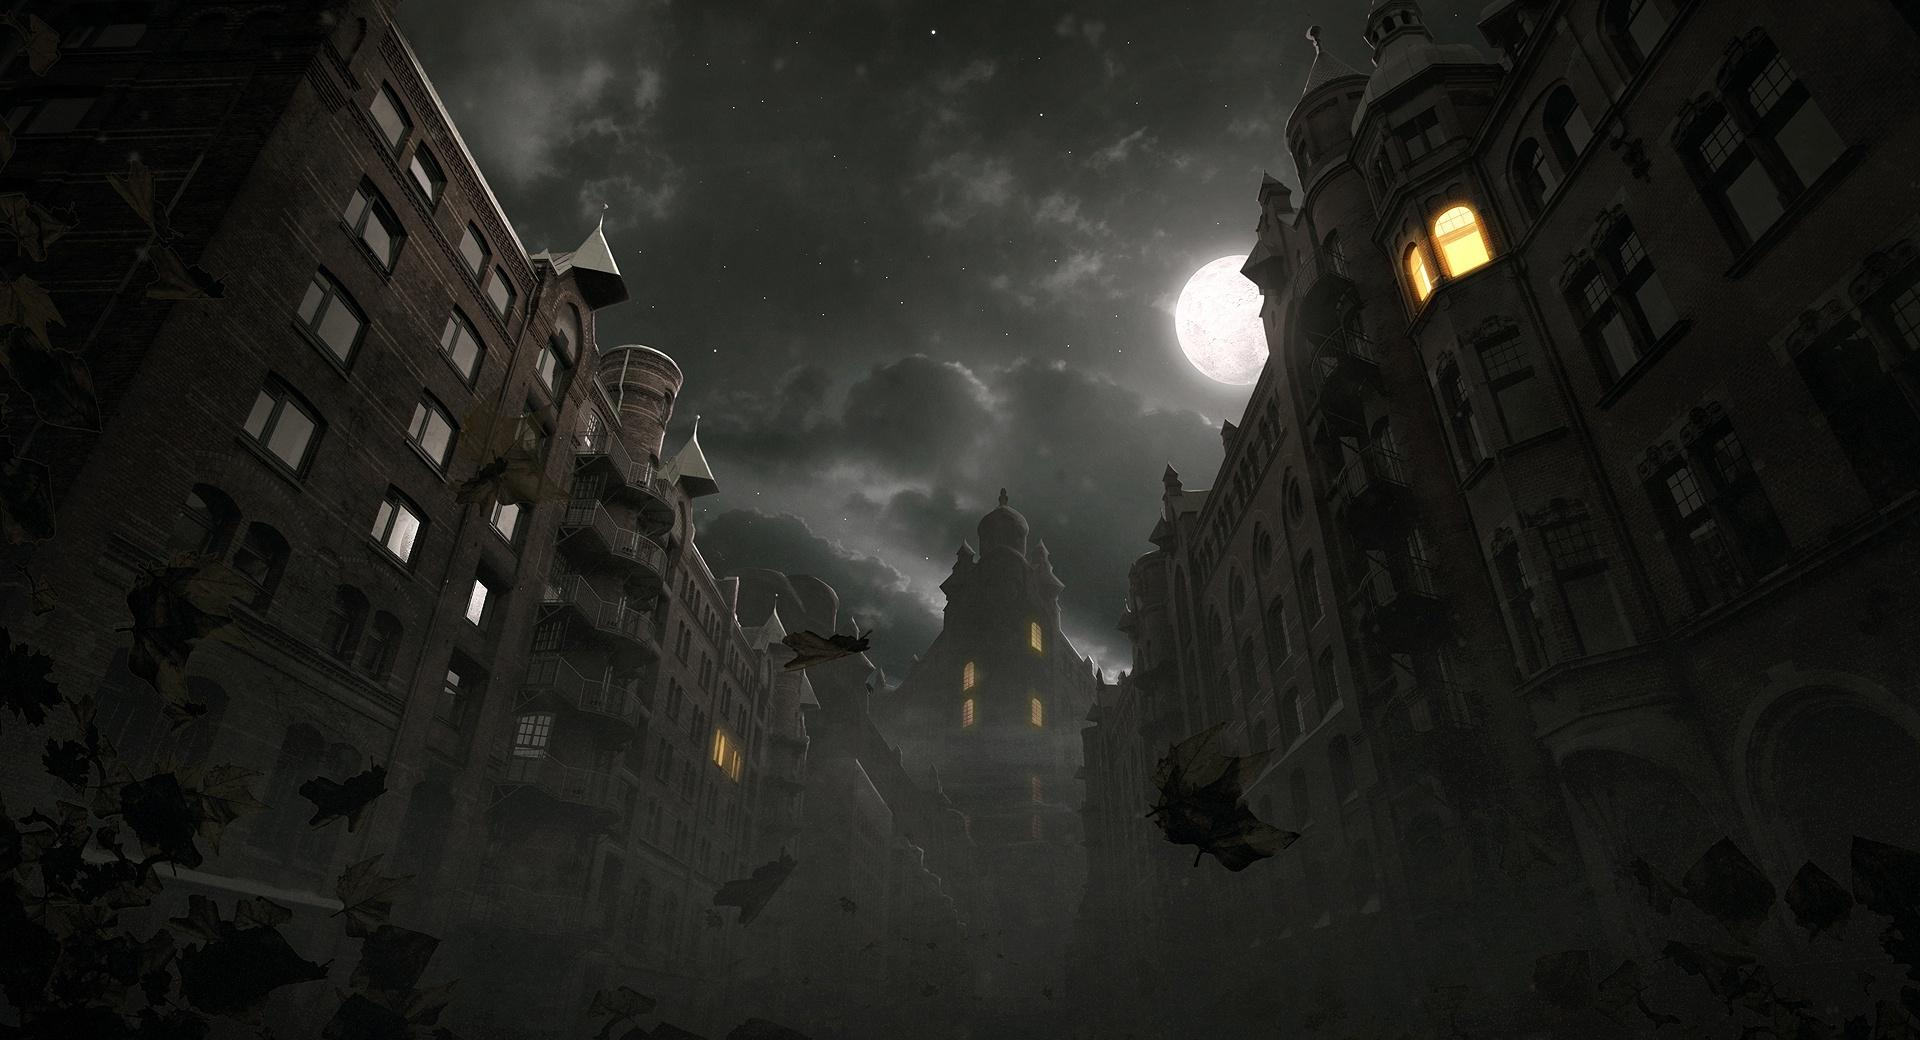 Dark City Autumn Scene wallpapers HD quality